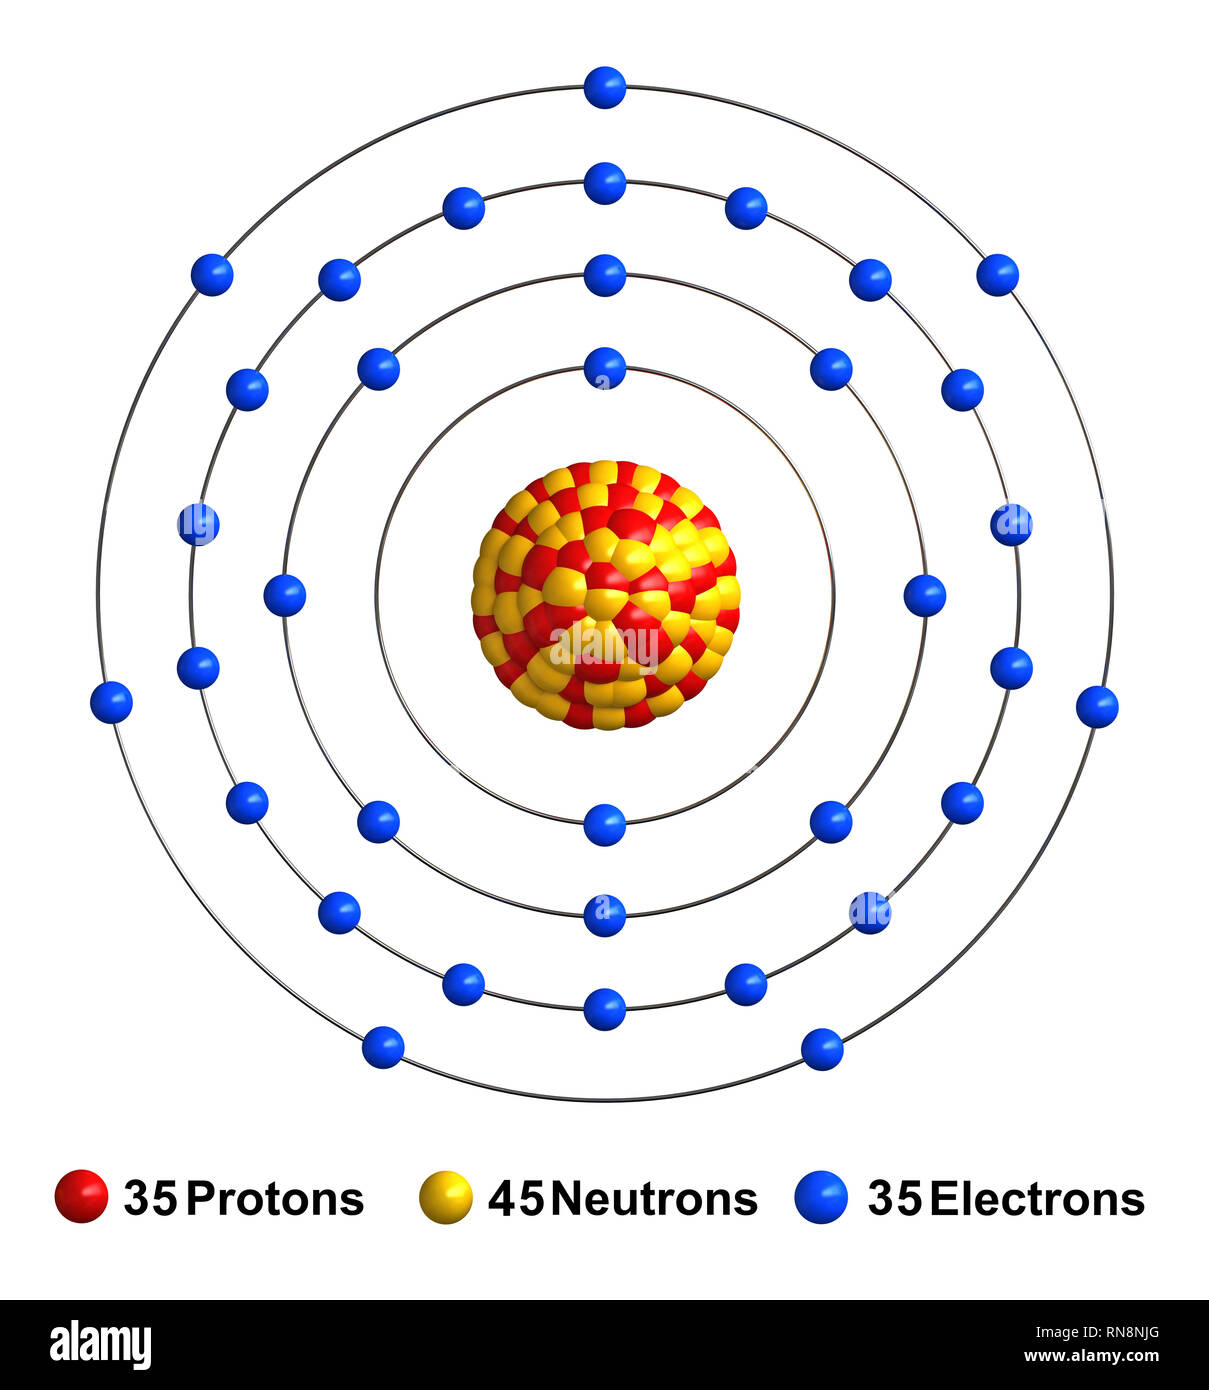 Protons Stock Photos & Protons Stock Images - Alamy